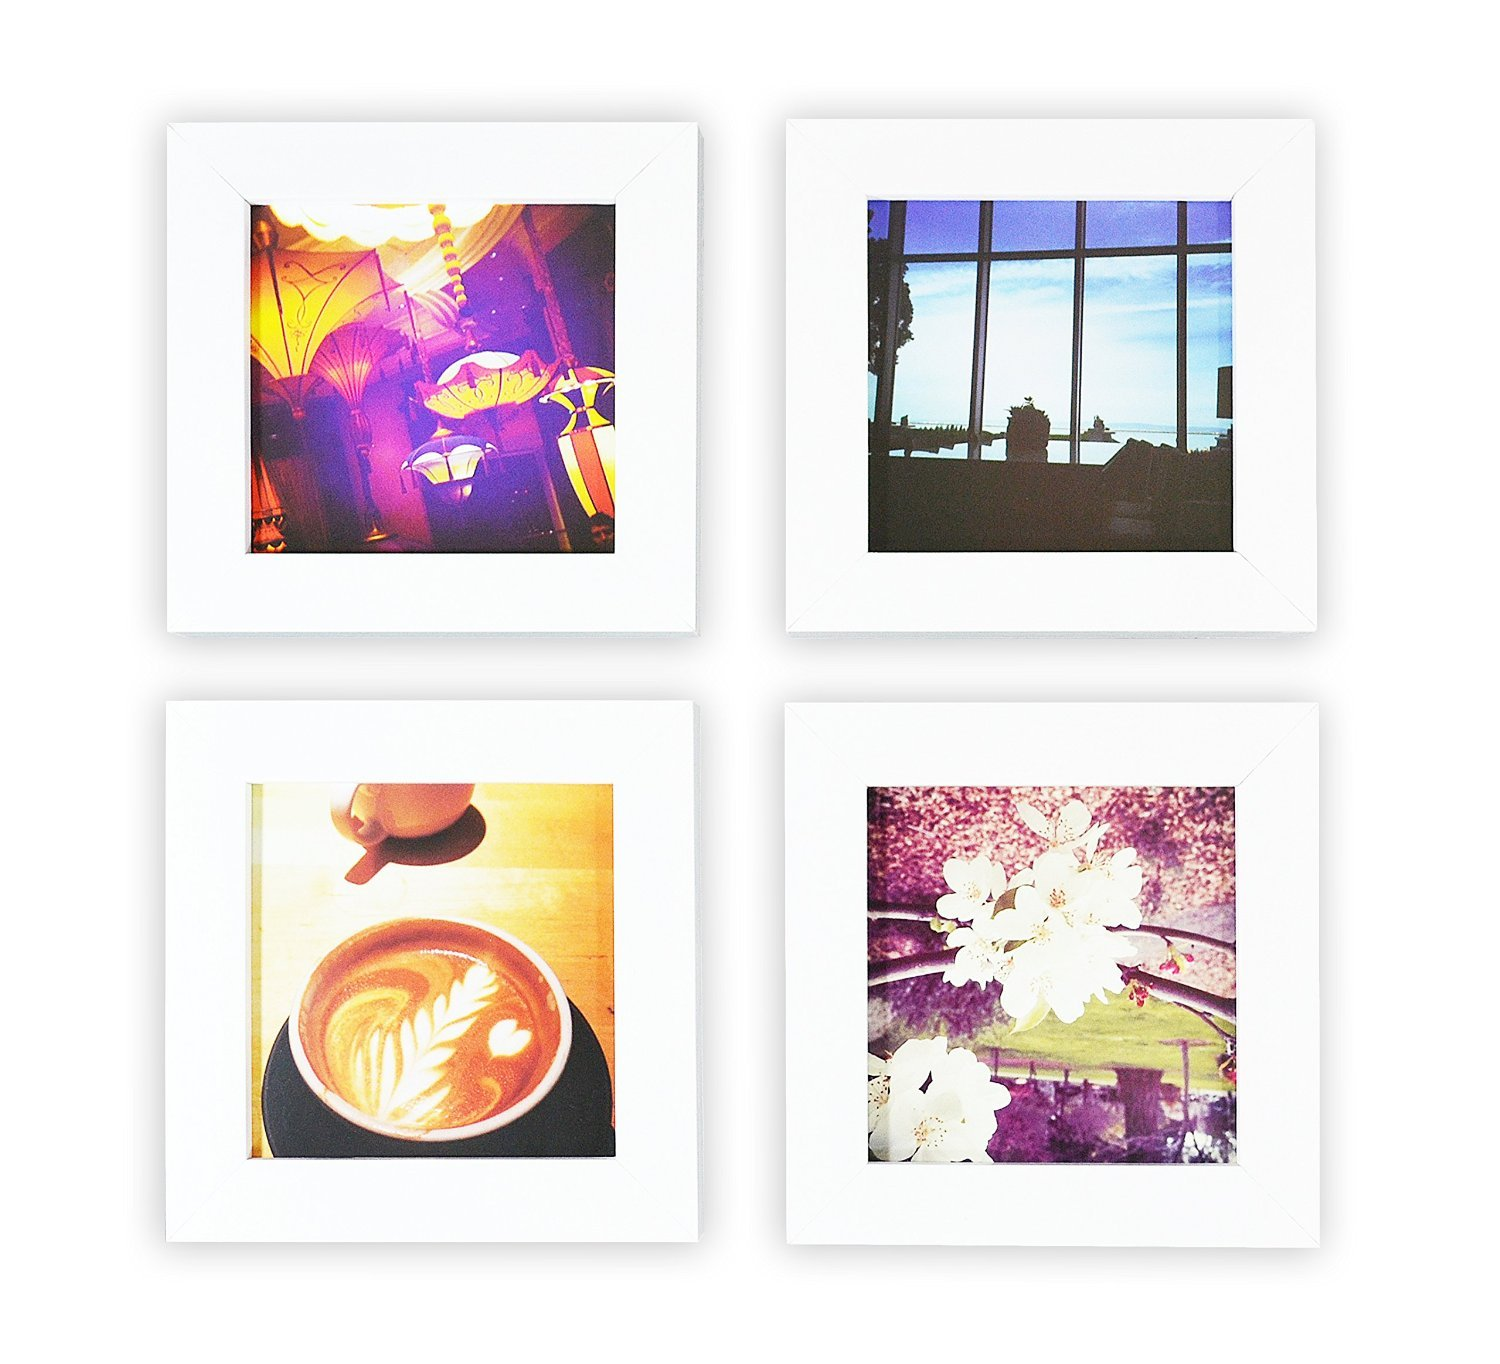 Golden State Art, Smartphone Instagram Frame Collection, Set of 4, 4x4-inch Square Photo Wood Frames, White by Golden State Art